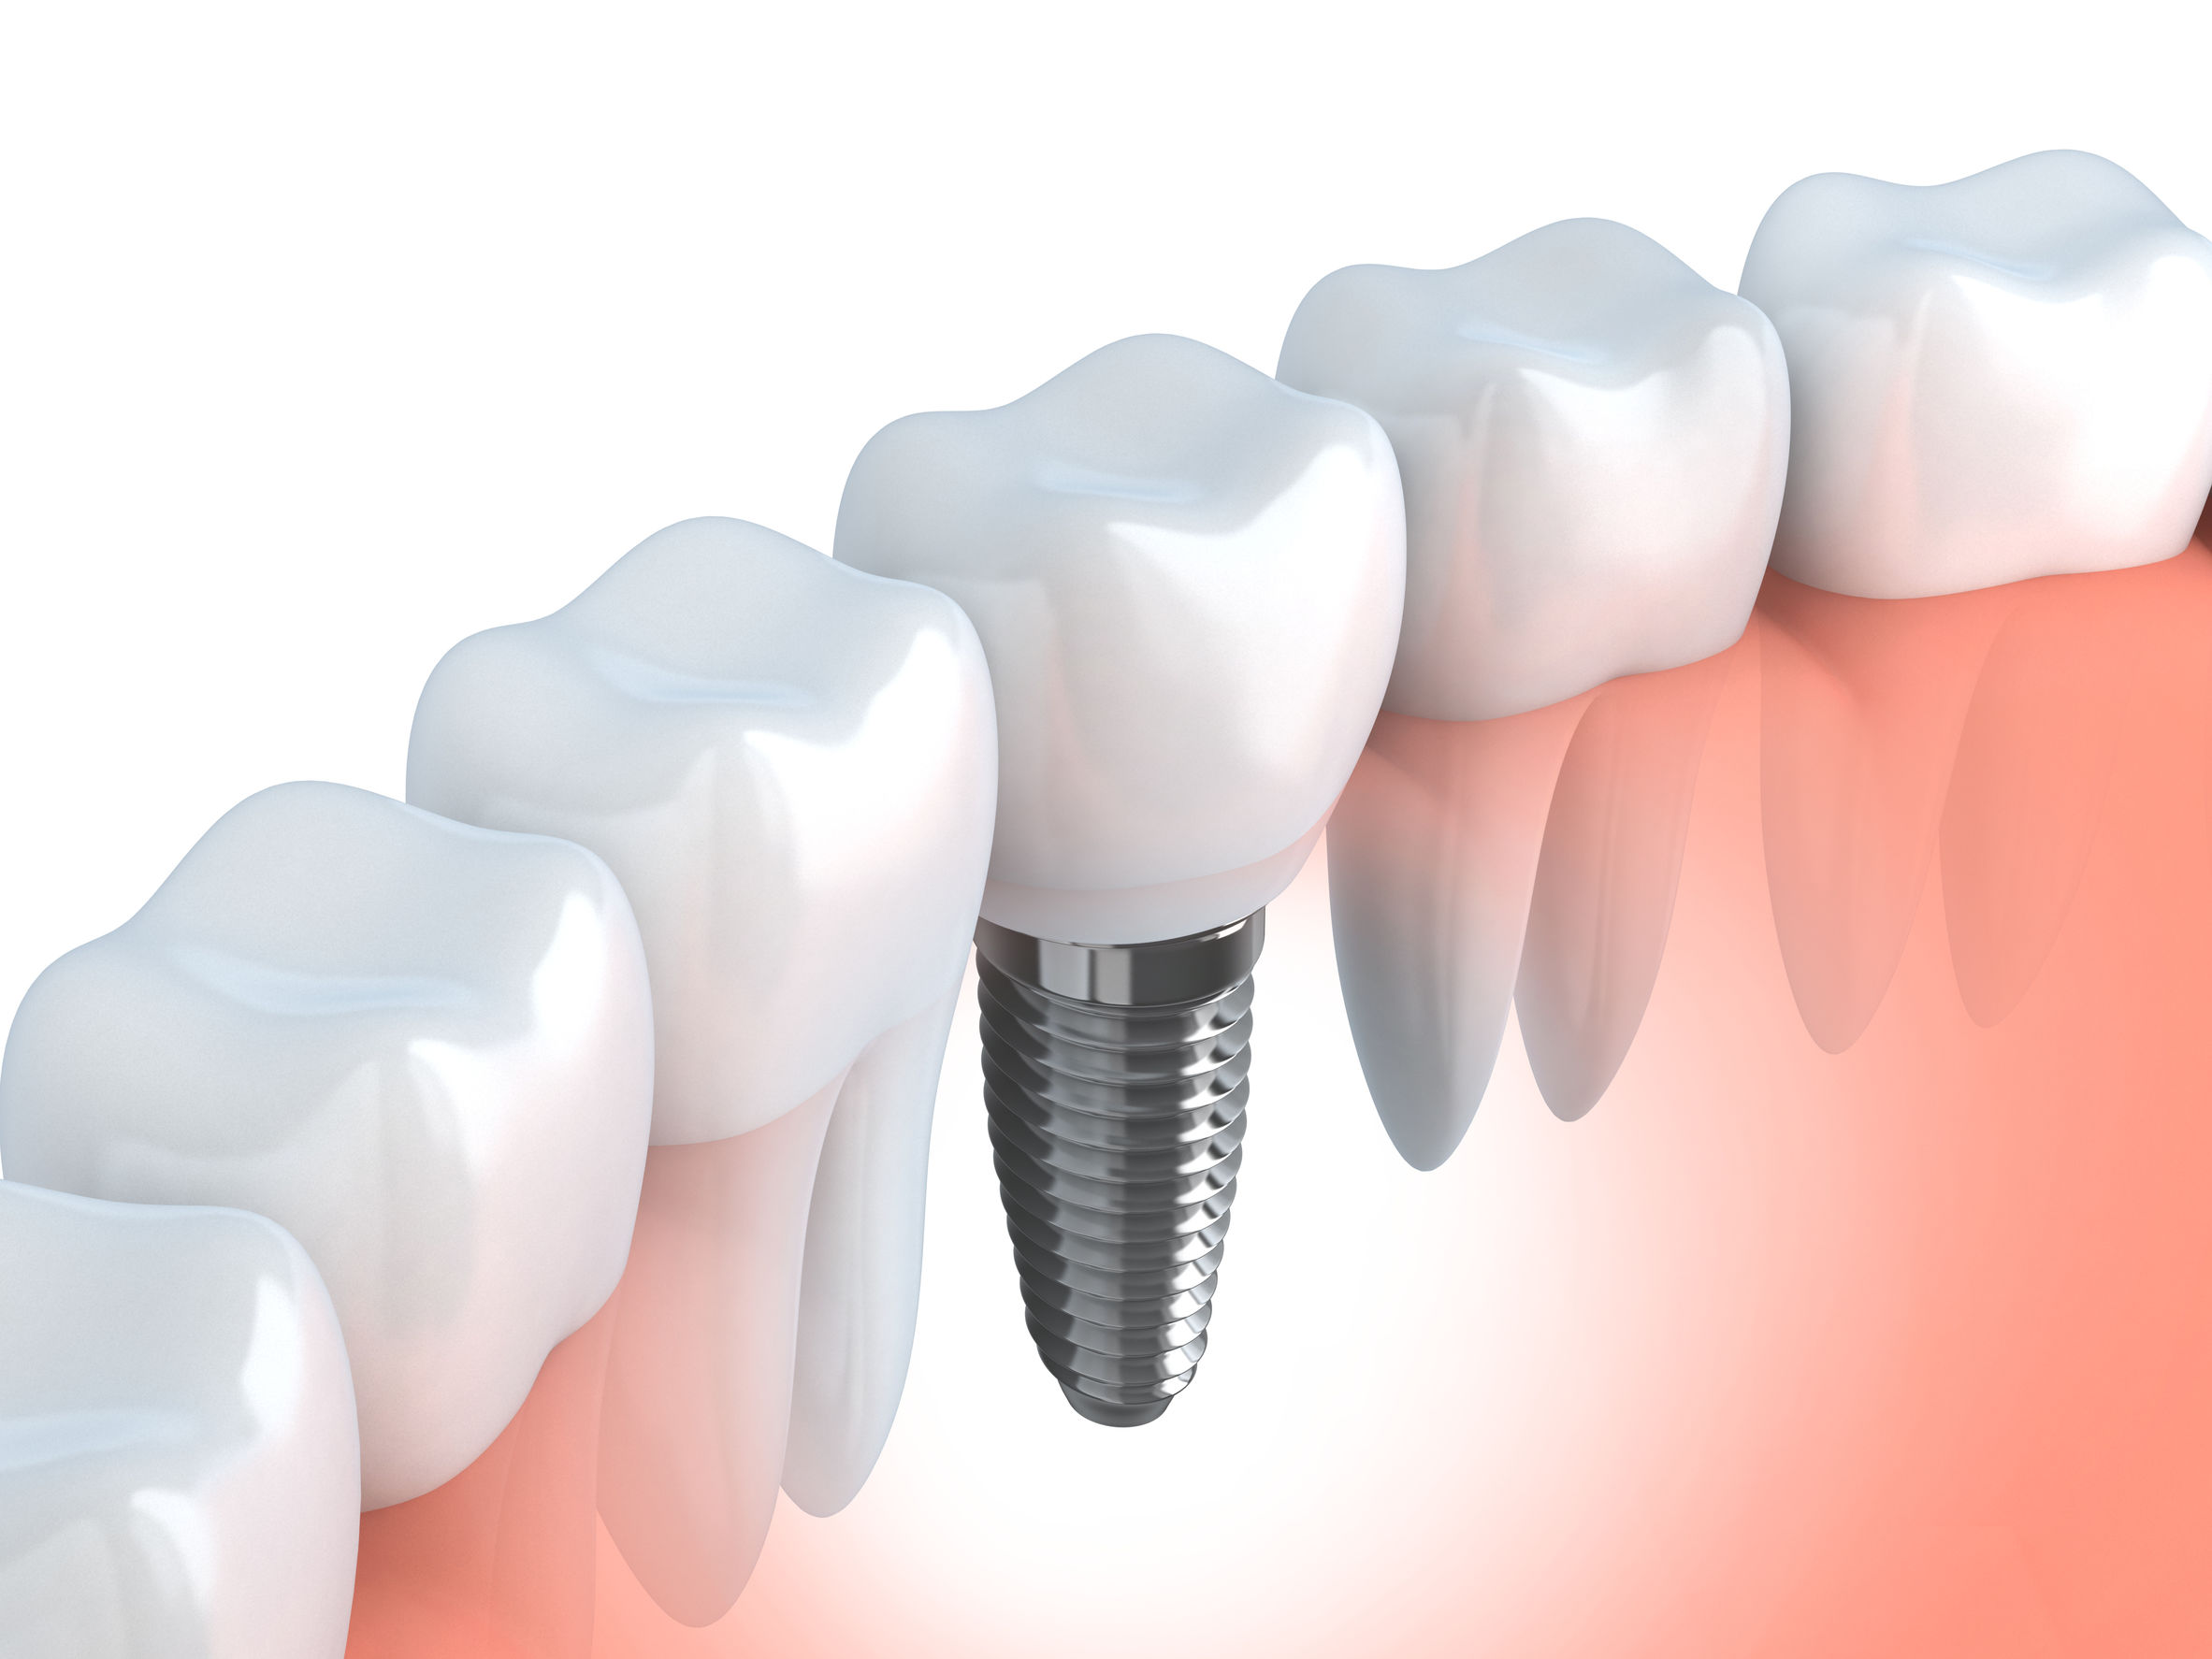 Illustration of a placed implant